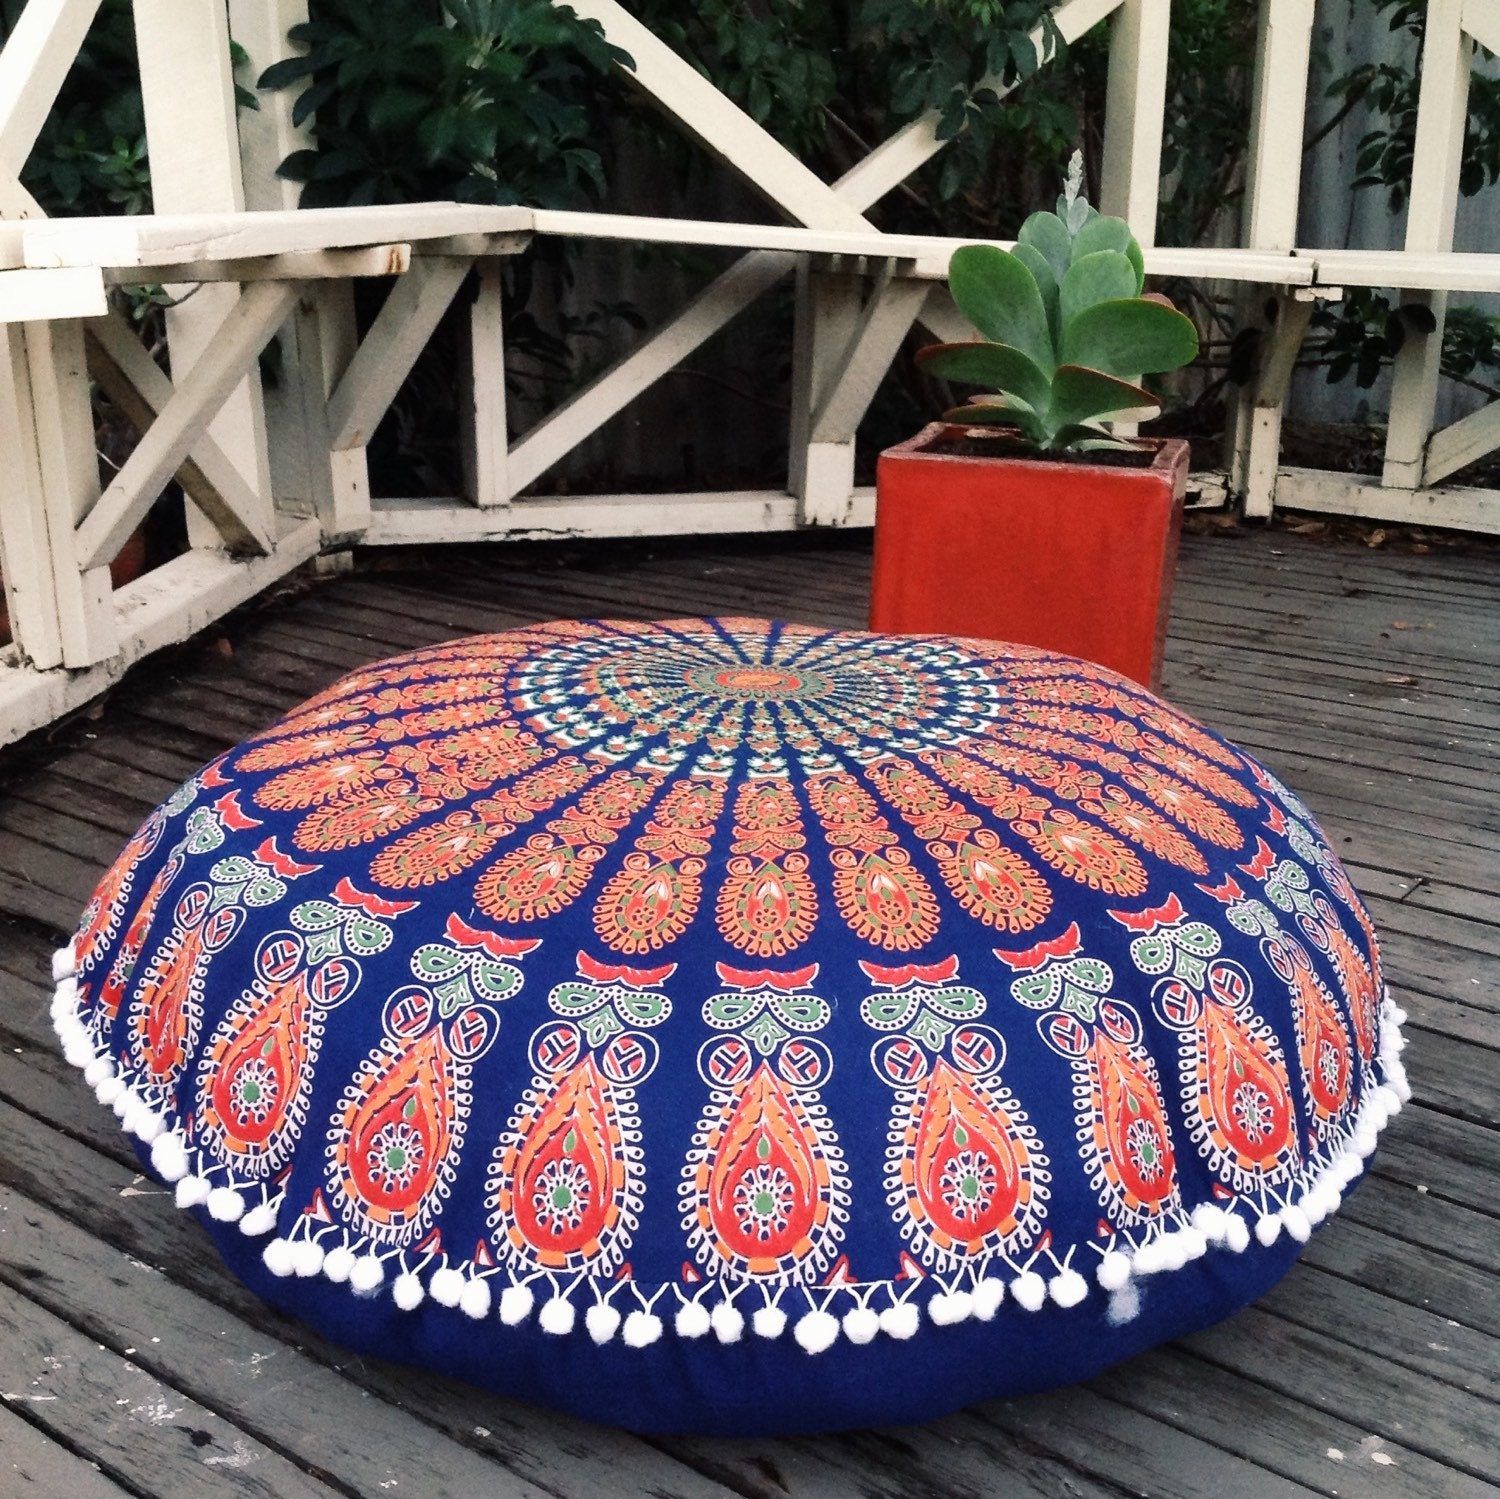 Giant Bohemian Floor Pillows : Bohemian floor cushion cover COVER ONLY by KOSMOtapestry on Etsy